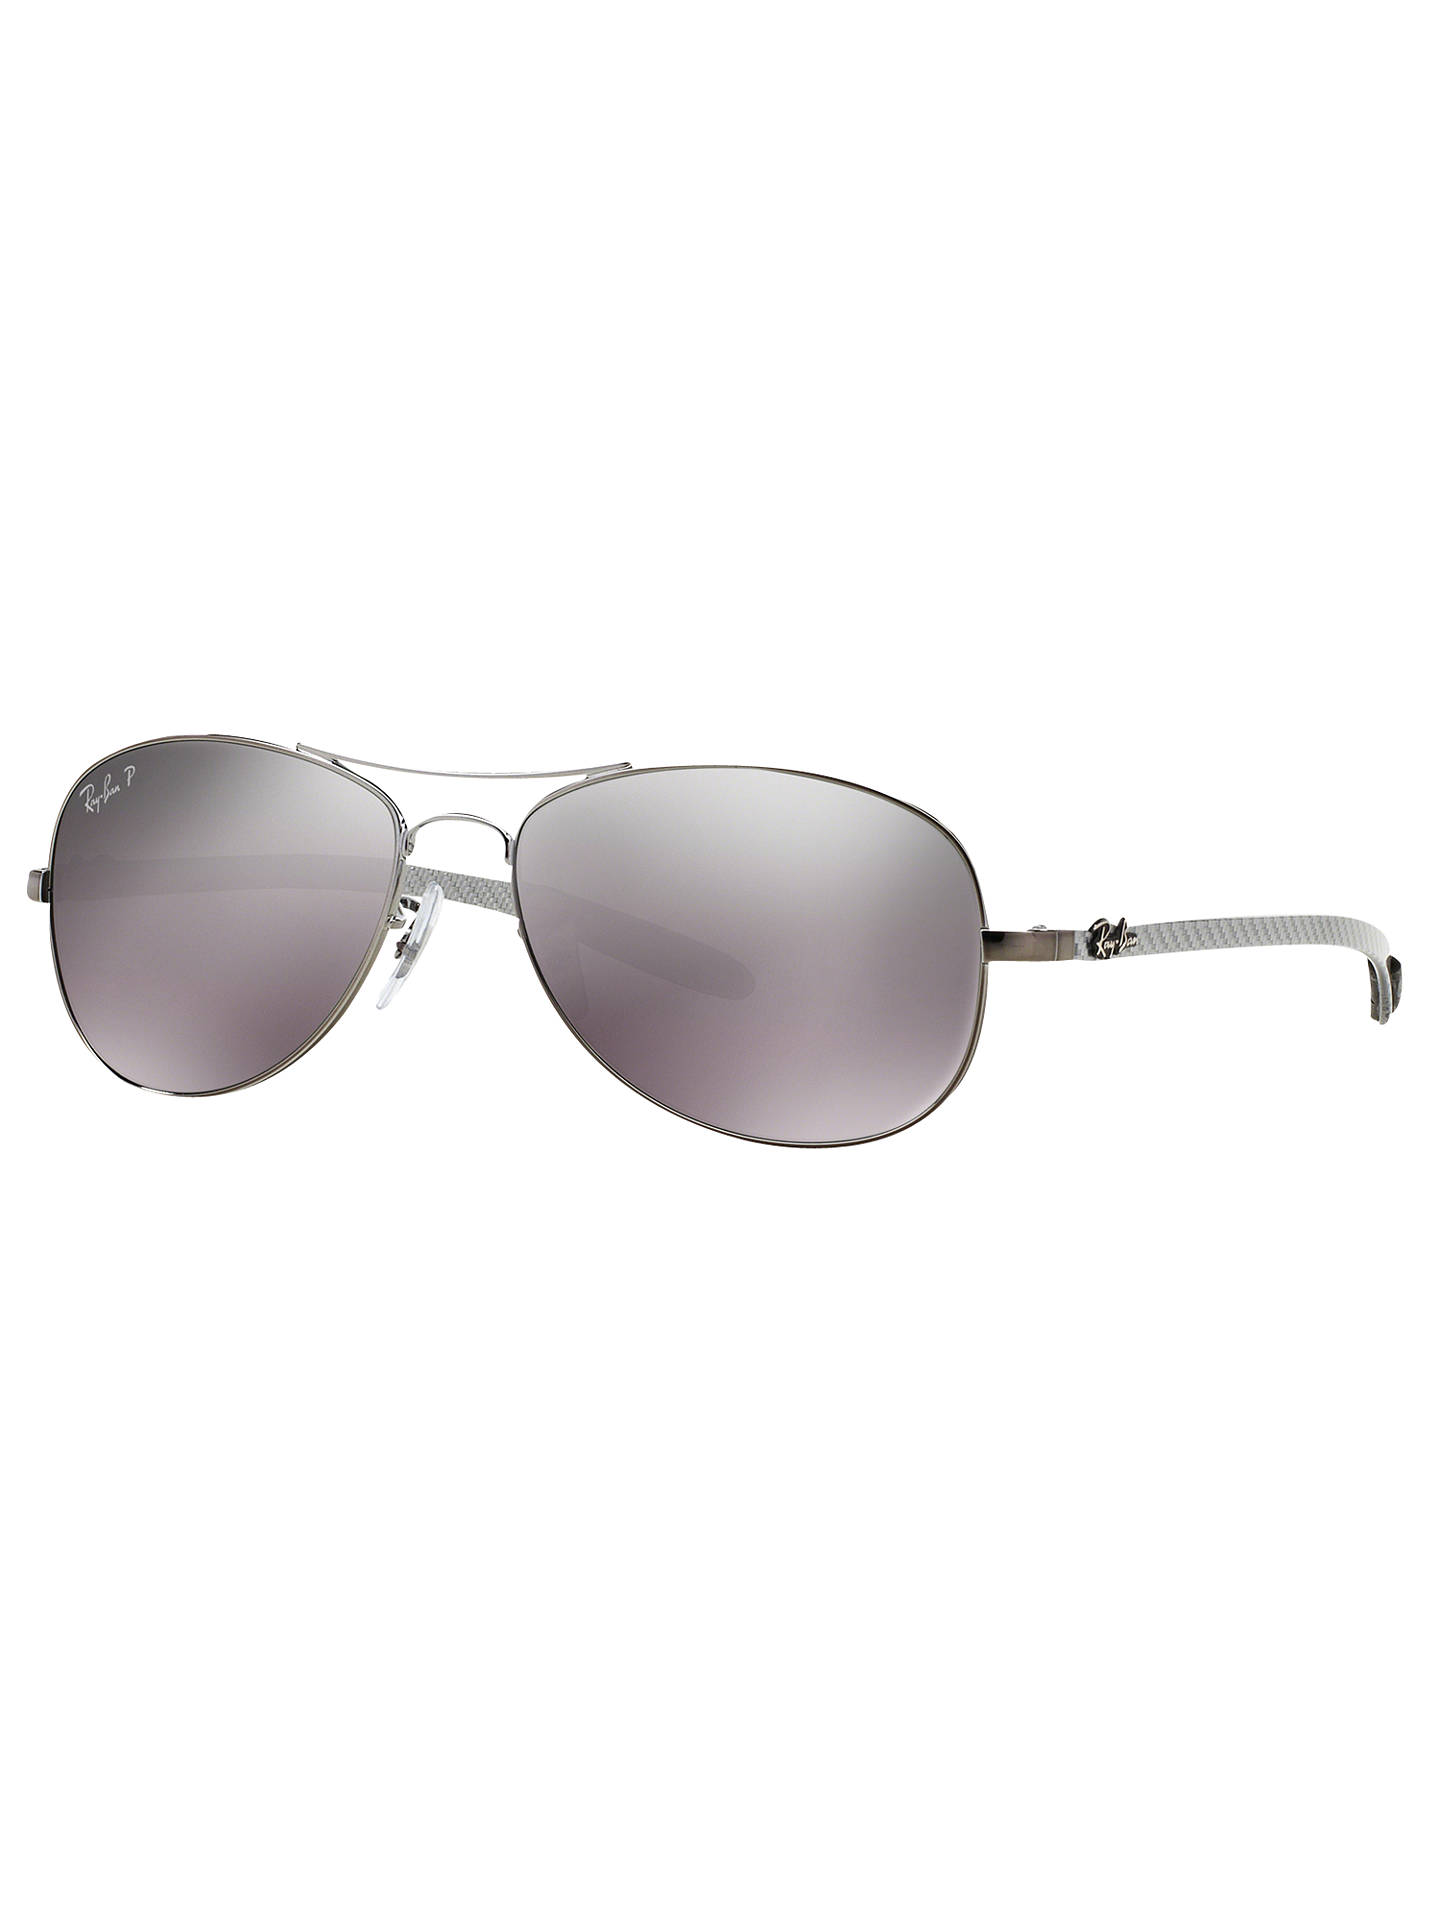 Buy Ray-Ban RB8301 Polarised Aviator Sunglasses, Gunmetal/Mirror Grey Online at johnlewis.com